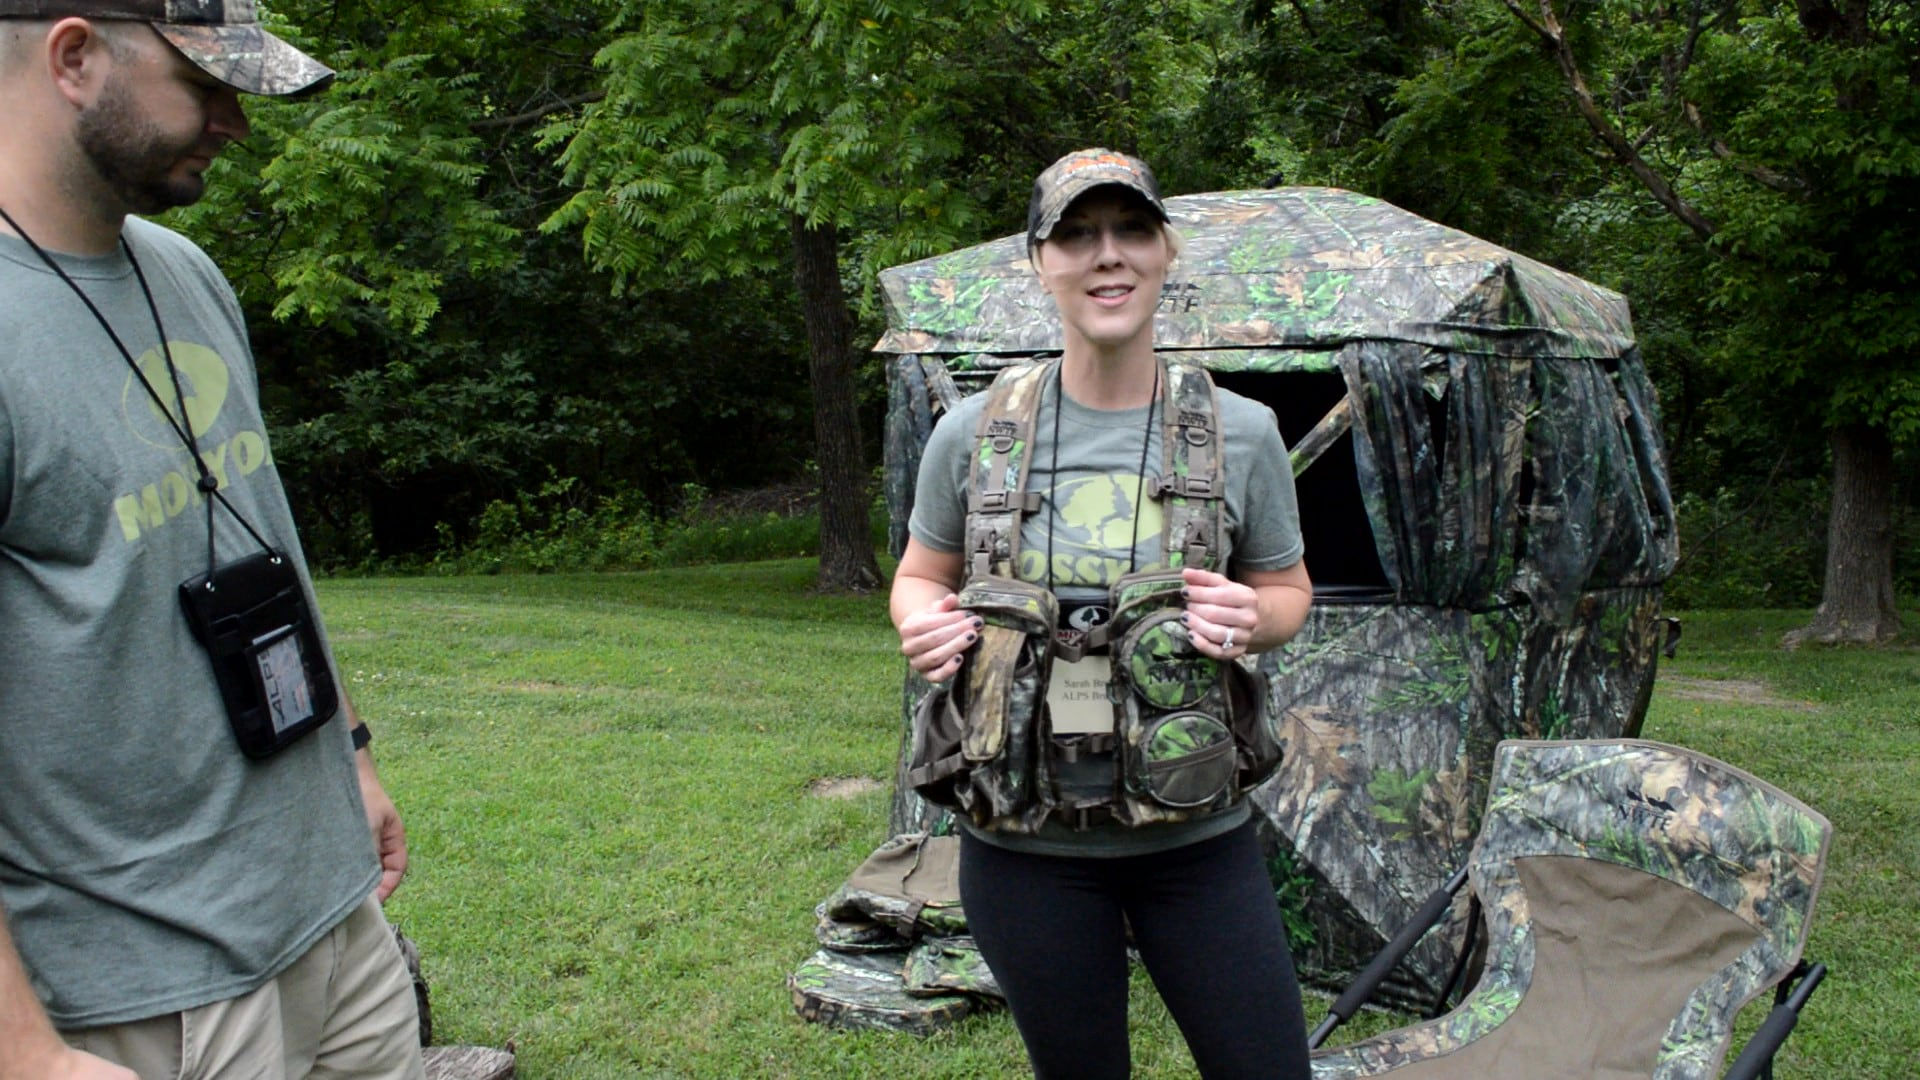 Sarah from Alps Outdoorz shows off the new-for-2017 Long Spur turkey vest. Built for the hunter who prefers to hunt on the move, this is lightweight already at 3lbs, but all its components are modular. The shoulder harness, rear game bag, padded waist belt, and call pockets are all removable allowing hunters to customize their vest. Best of all, the large lumbar pack zips off for those run-and-gun hunters who really want to travel light. (Photo: Kristin Alberts)